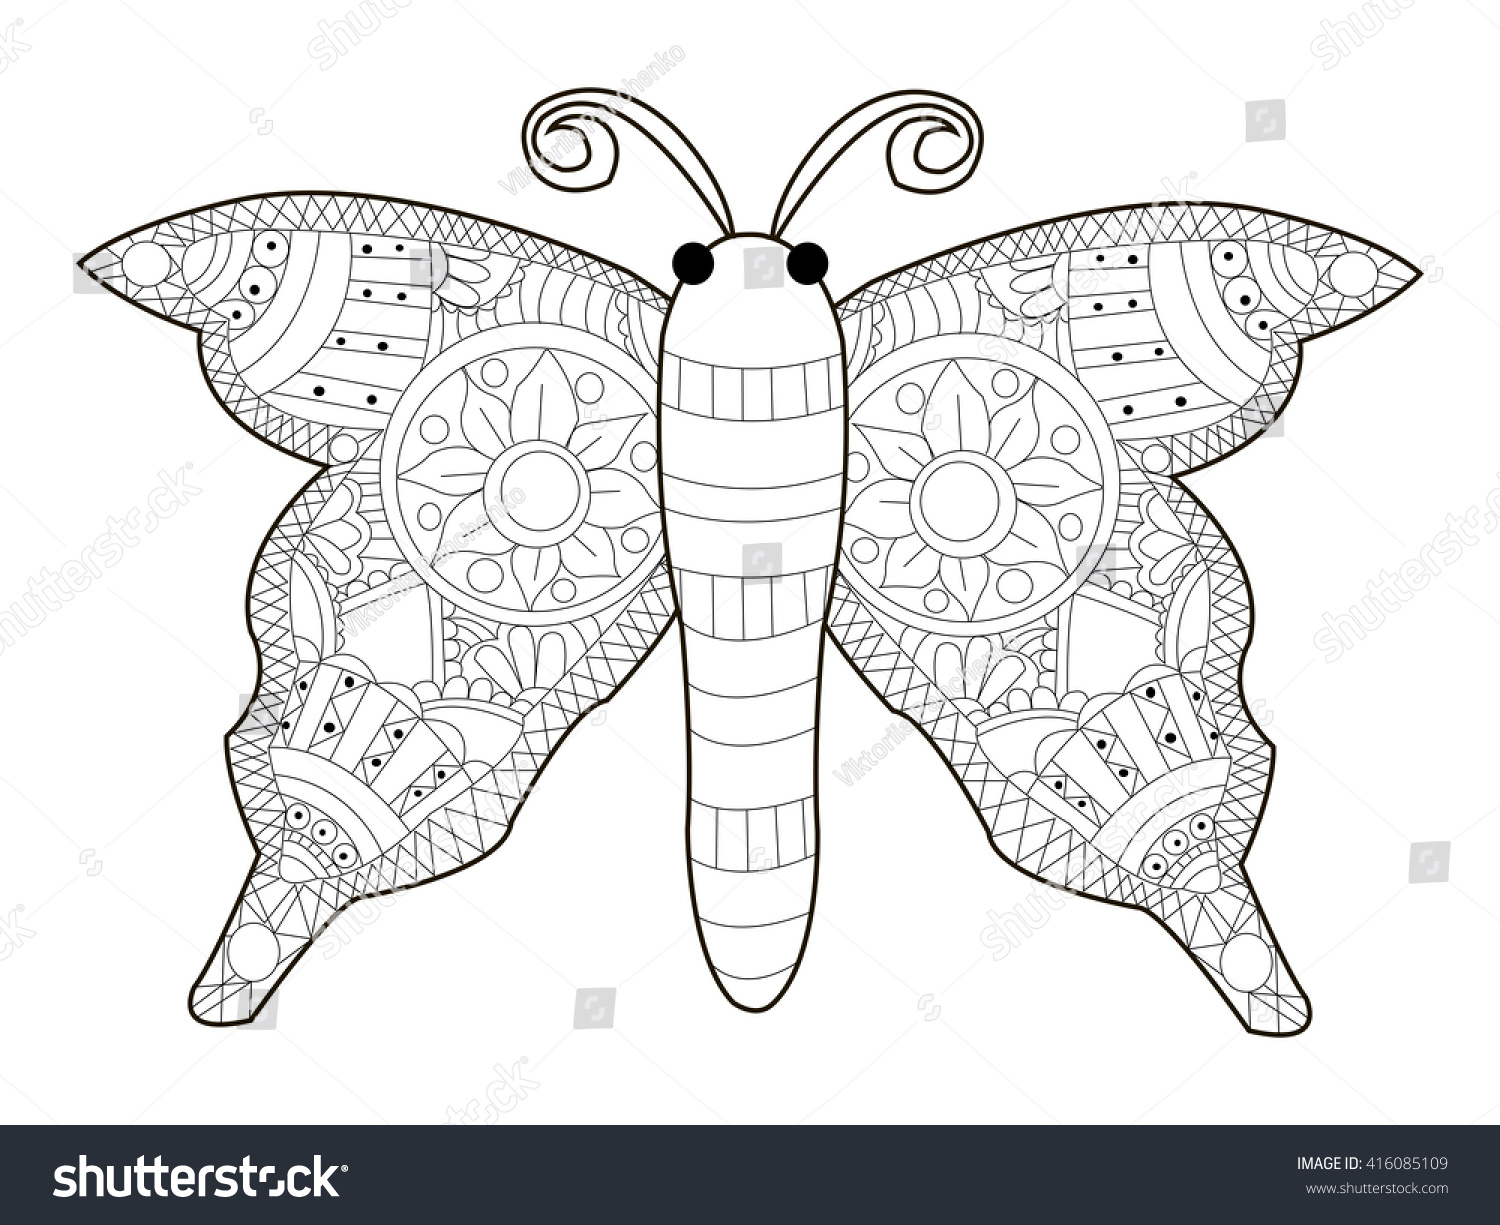 Butterfly Coloring Book For Adults Vector Illustration Anti Stress Adult Zentangle